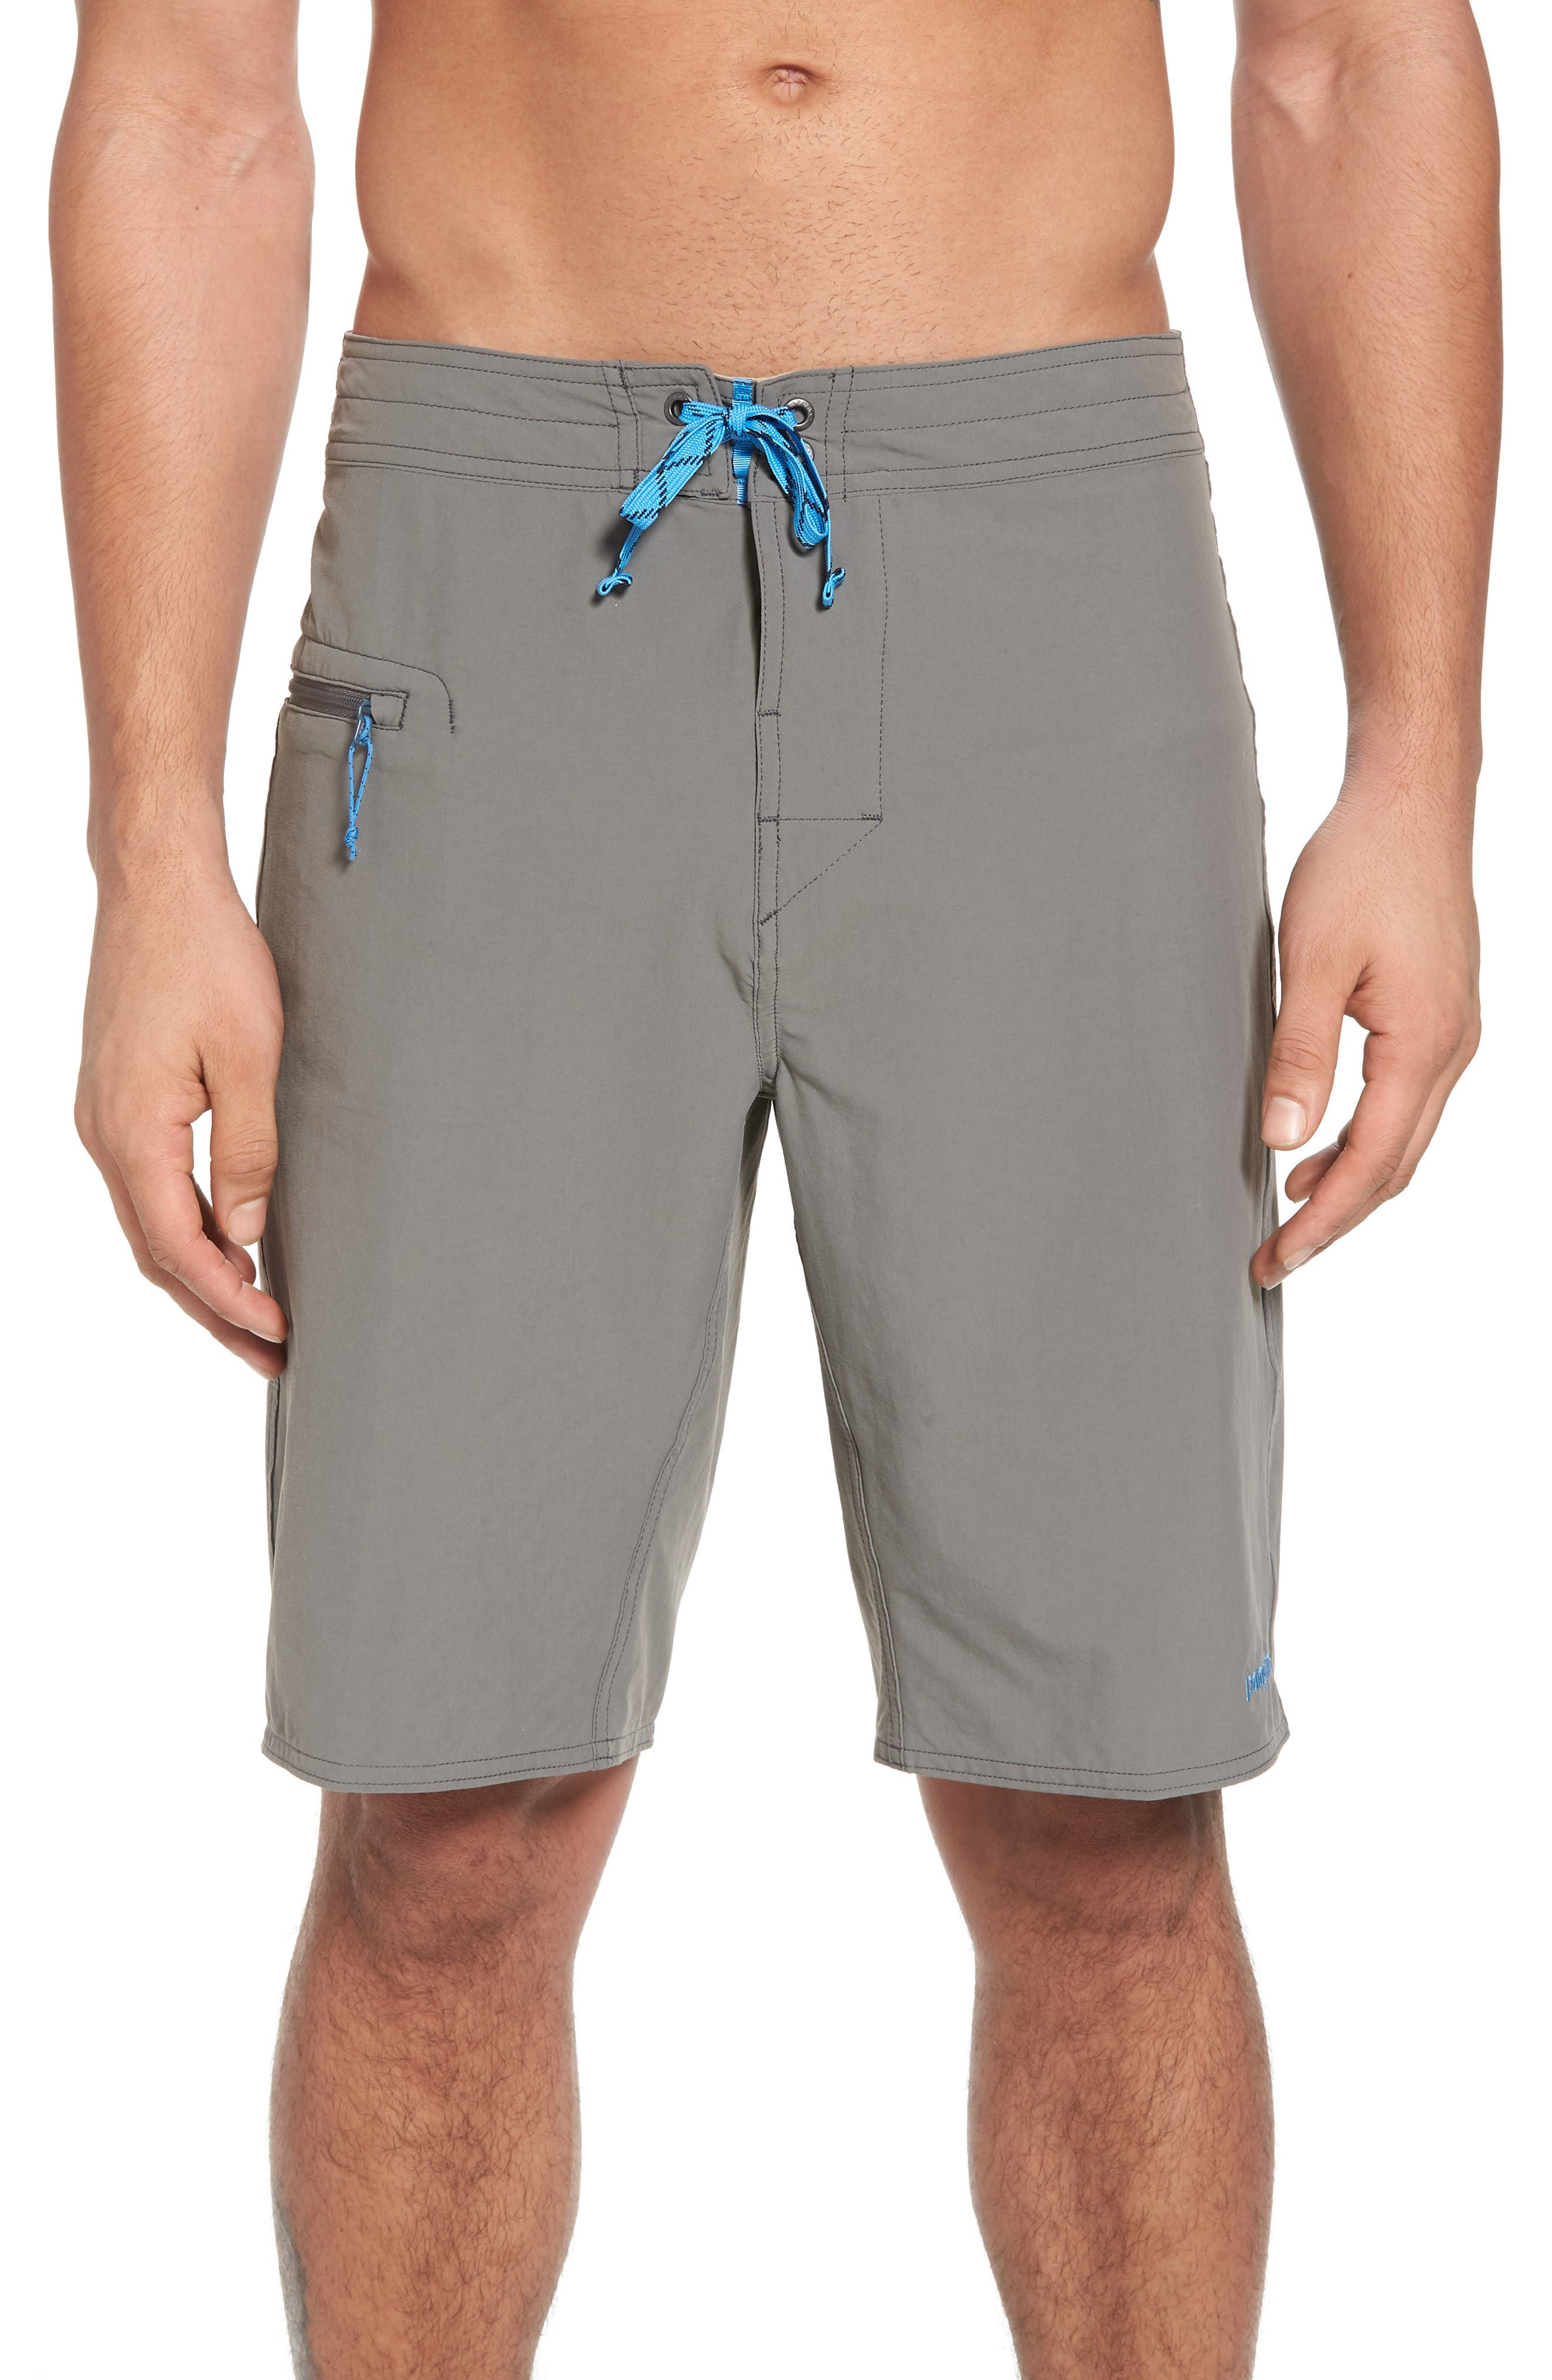 Wavefarer Board Shorts,                         Main,                         color, 021